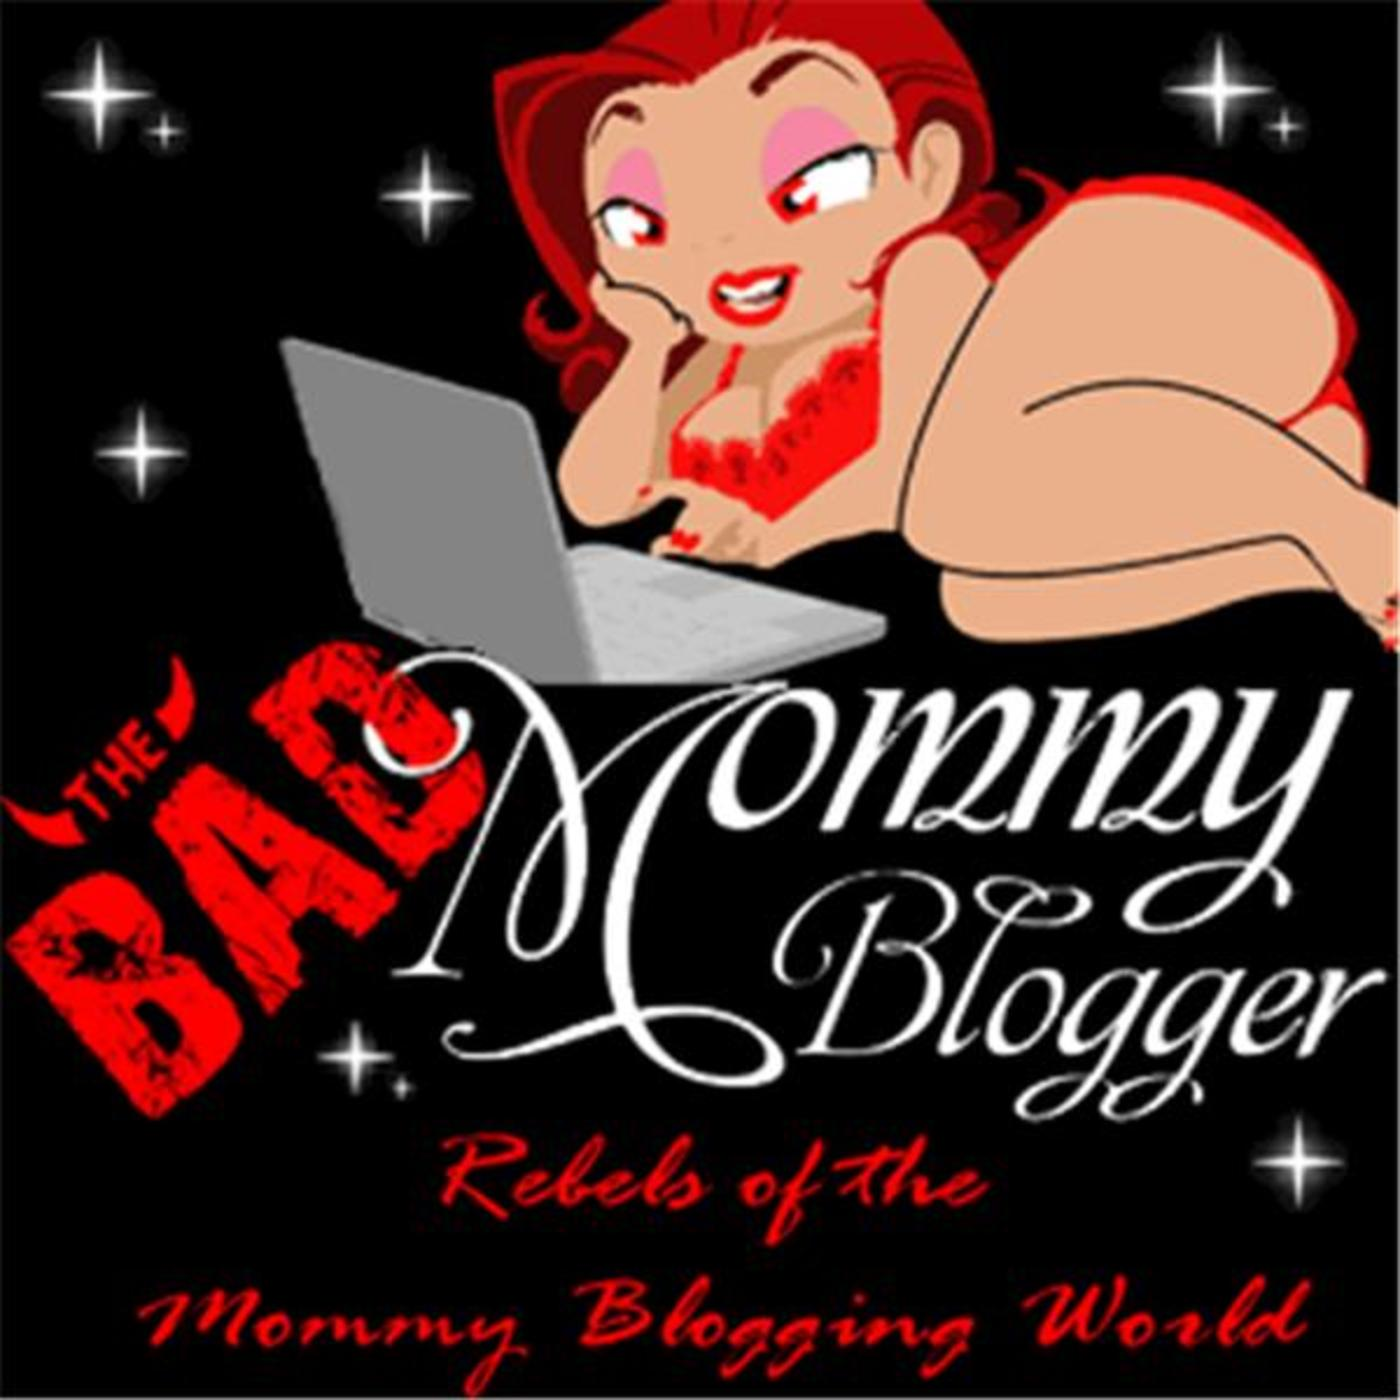 Bad Mommy Blogger - Rebels of the Mommy Blogging World